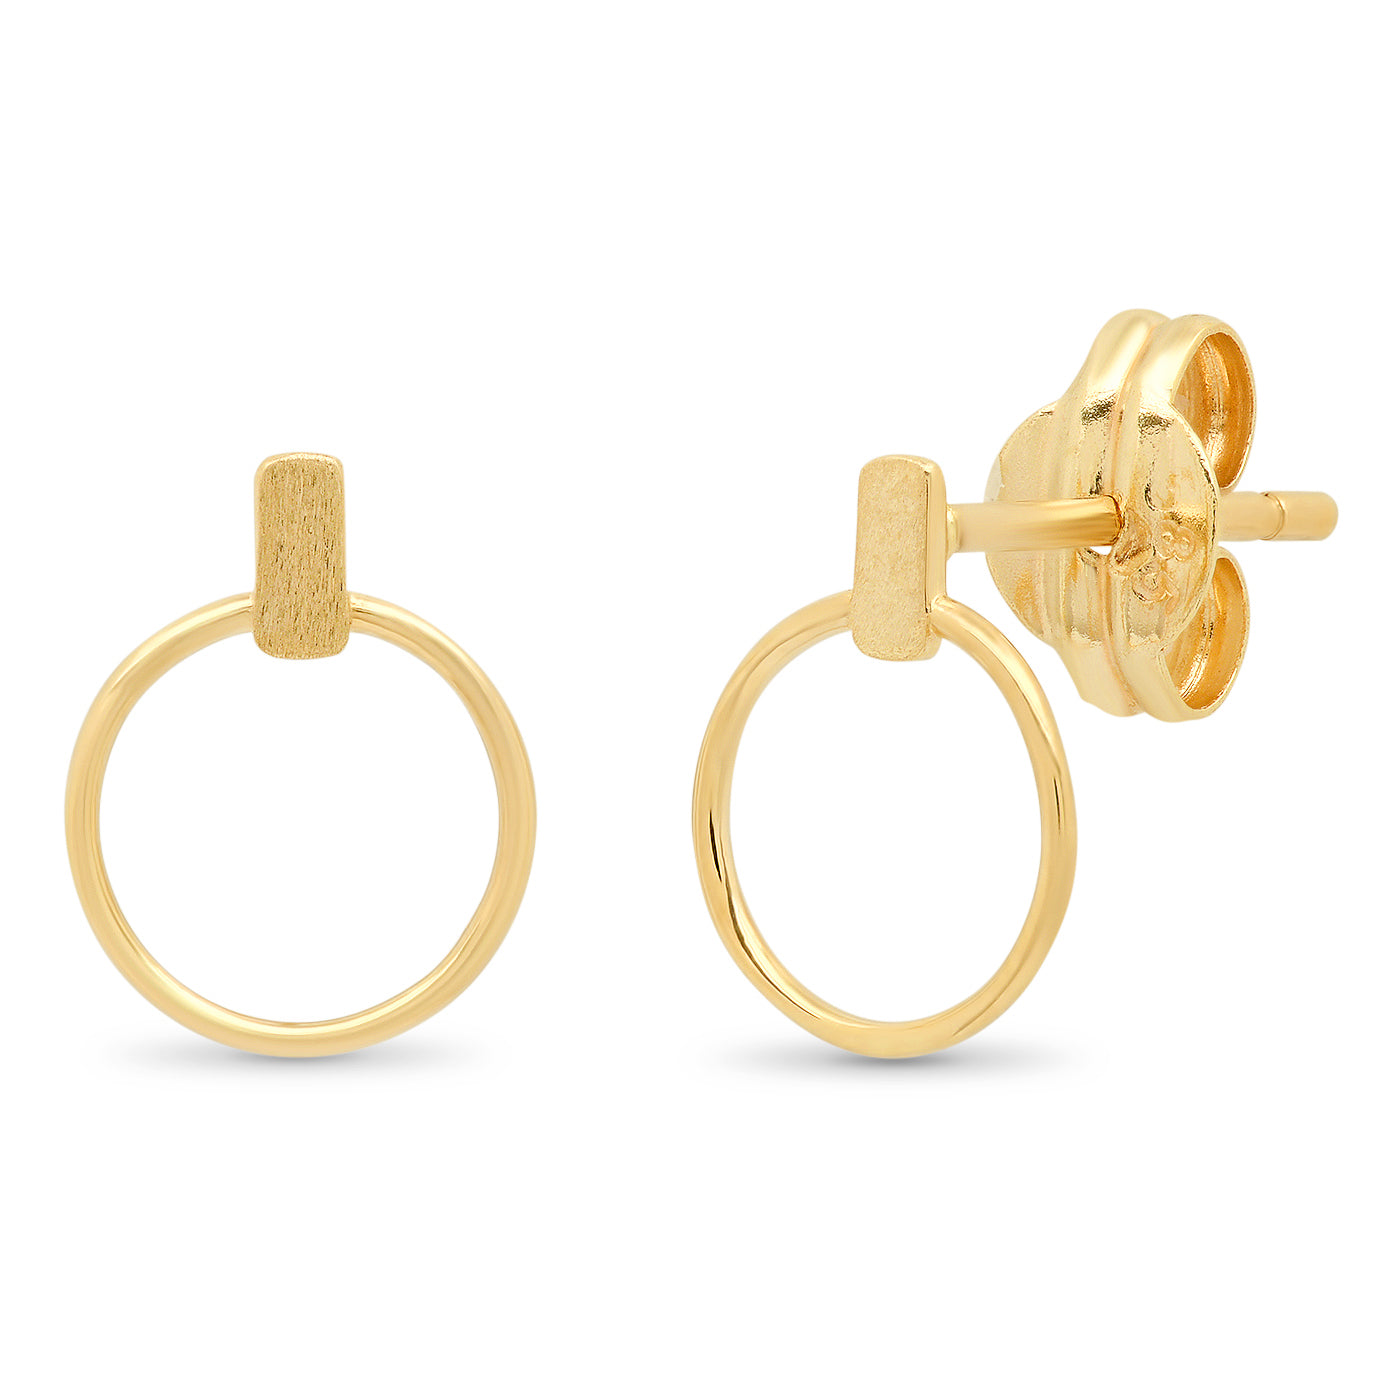 TAI Fine 14k Gold Stick Studs with Open Circle